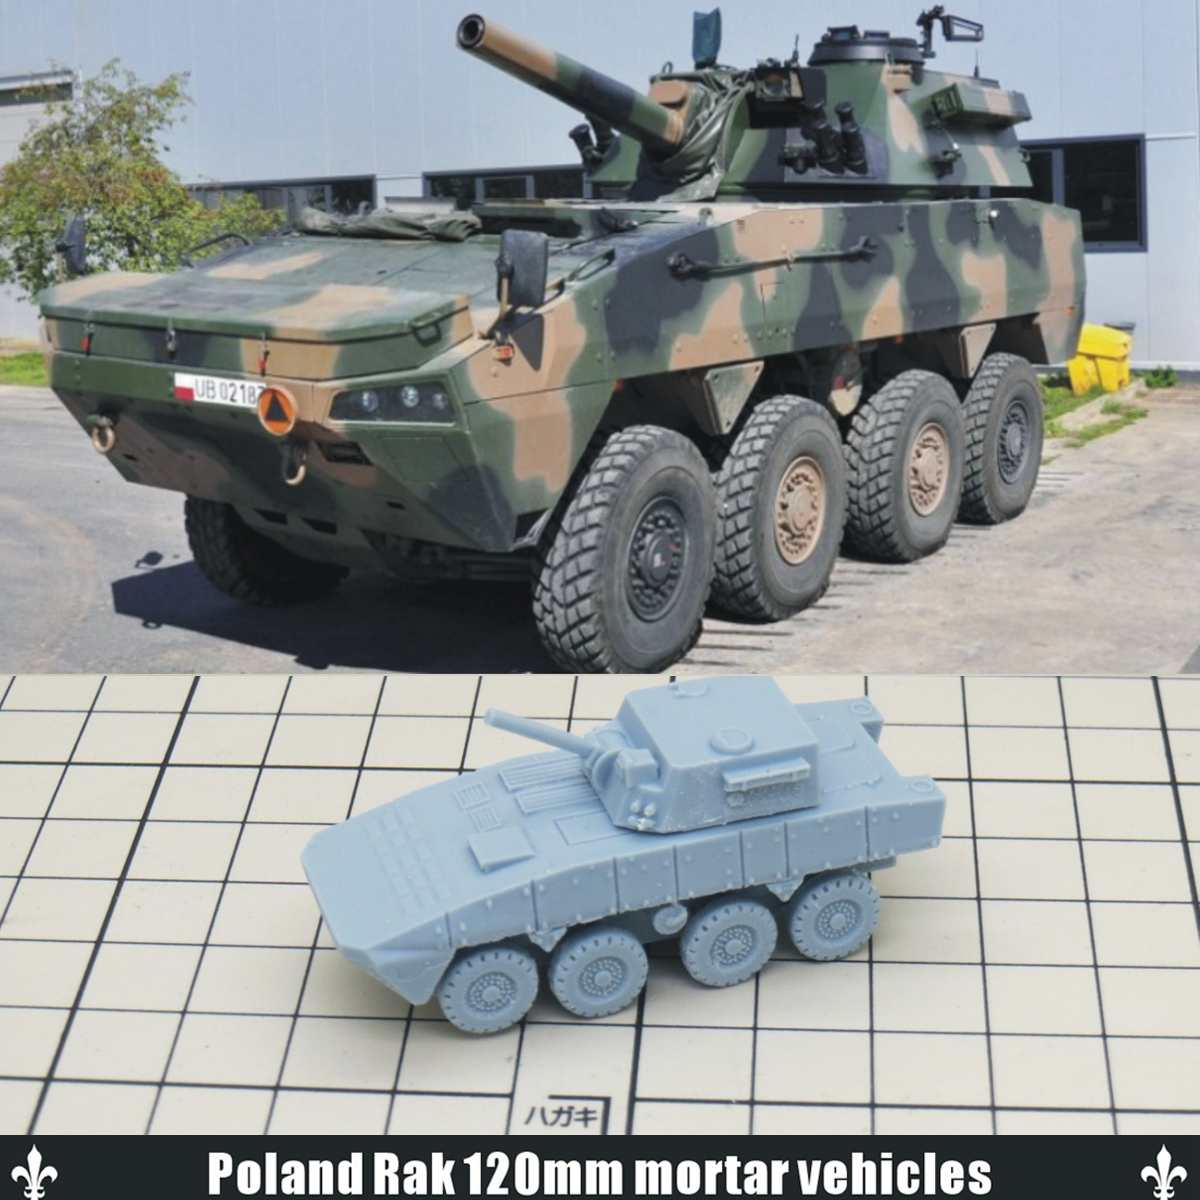 1/144 DIY Military Model Kits WWII Poland Vehicles Car Auto Tank Series  Sand Table Model Figurines Kids Gift 3D Toys Collection